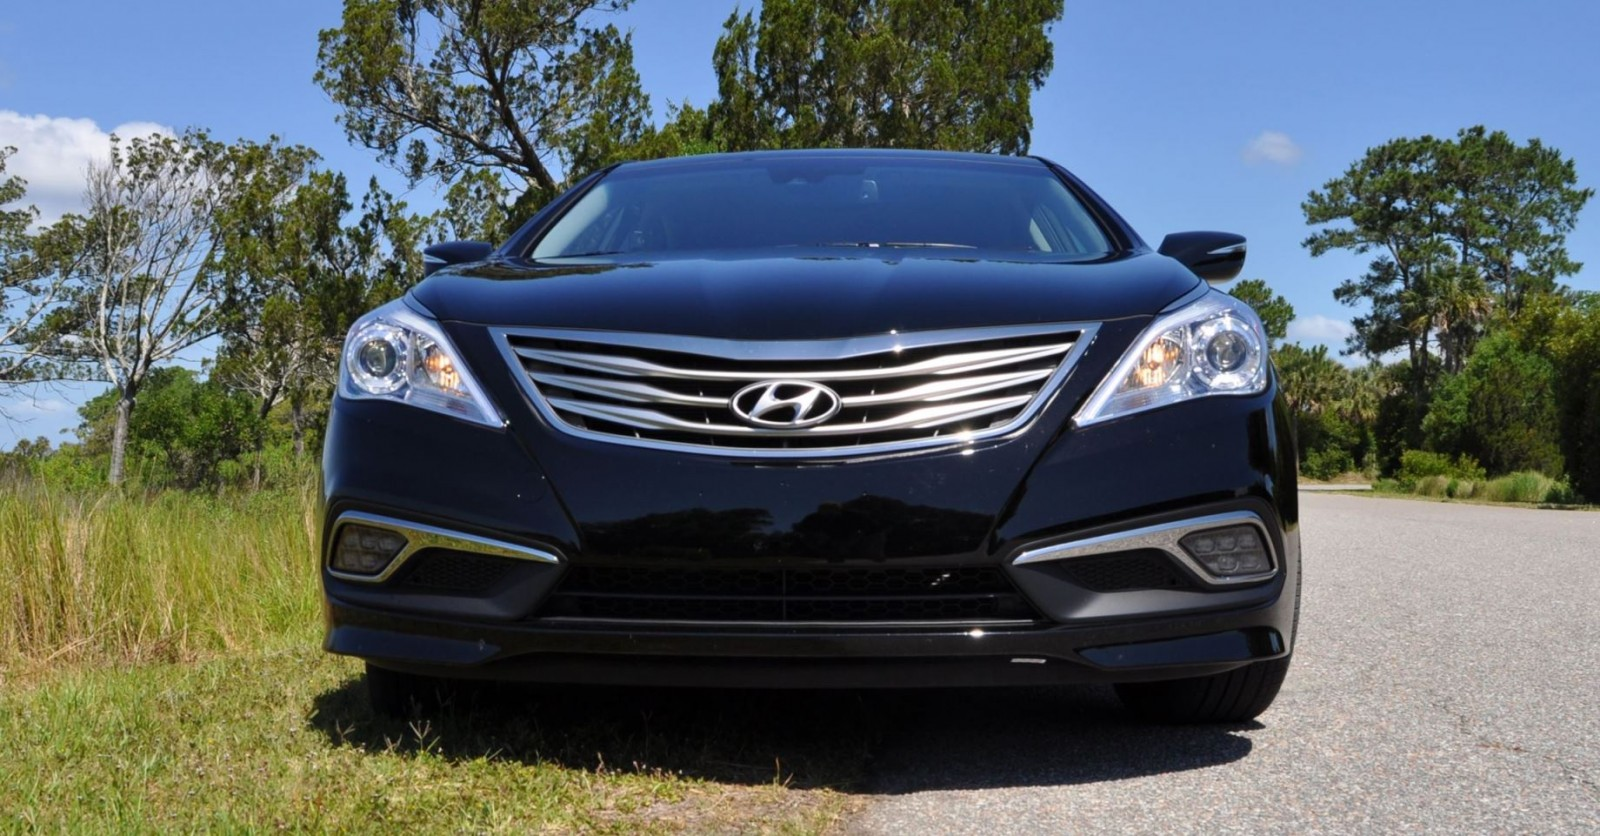 road test review 2015 hyundai azera limited 1 car revs. Black Bedroom Furniture Sets. Home Design Ideas